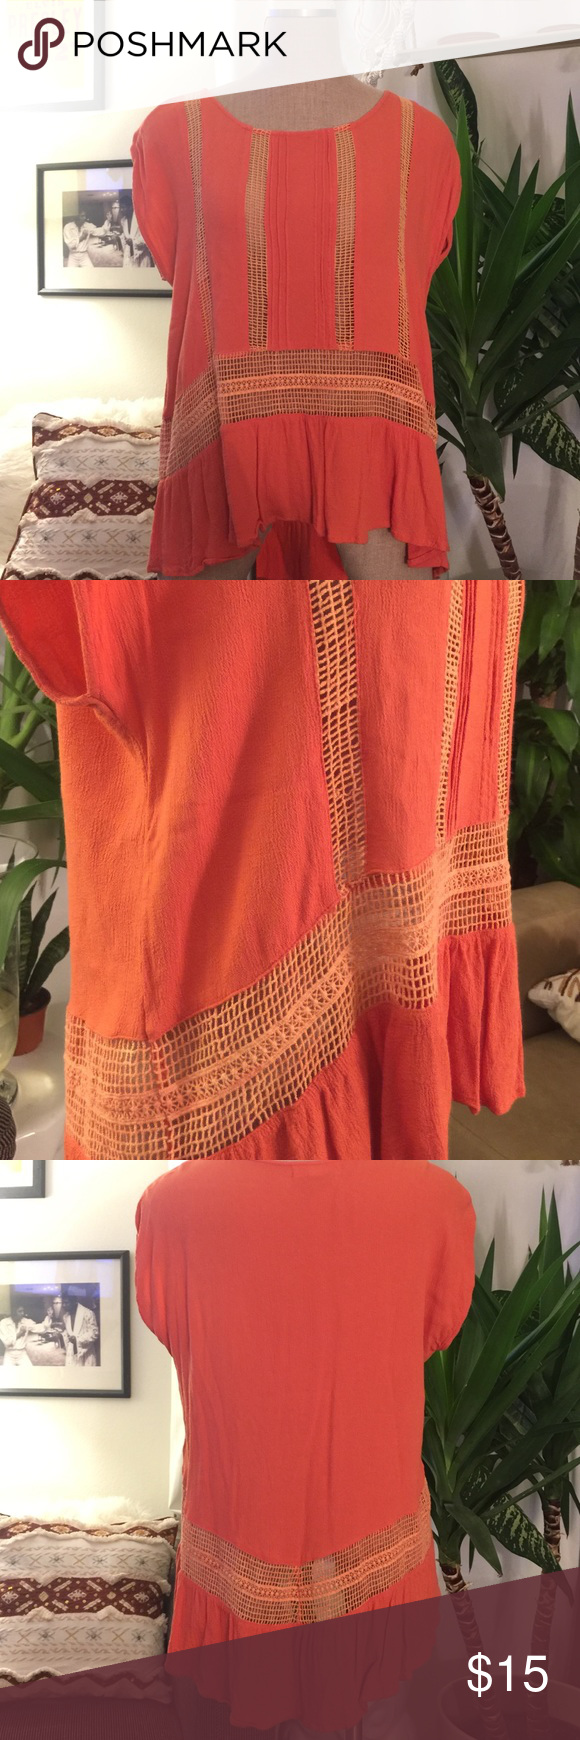 Urban Outfitters Orange High Low Top Orange Staring at Stars high low top from Urban Outfitters with mesh style detailing. Super cute! Love how the longer back drapes. Barely worn, great condition! Urban Outfitters Tops Blouses